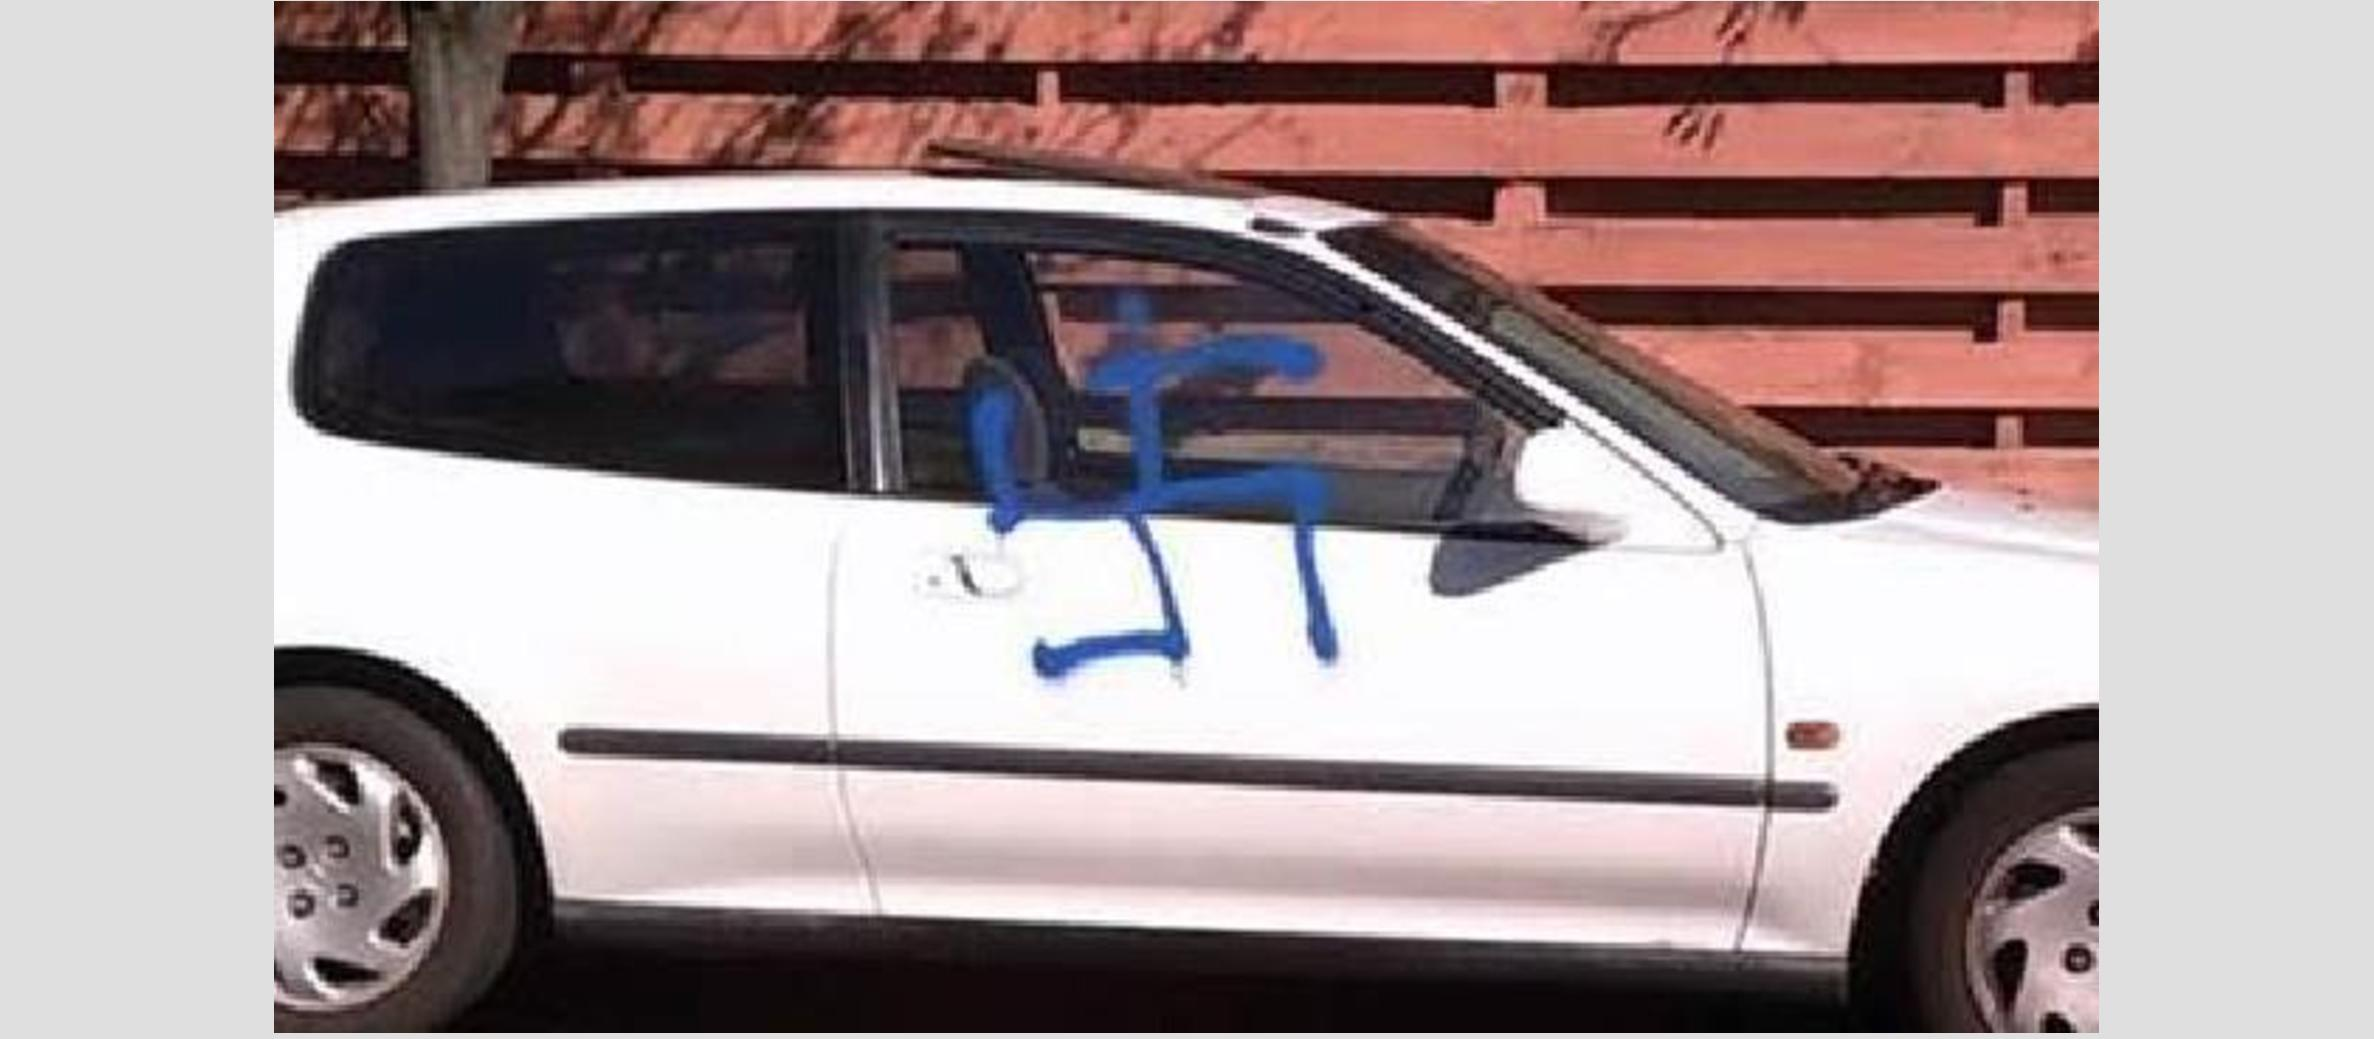 Swastika pairing on Jewish family's car in Melbourne